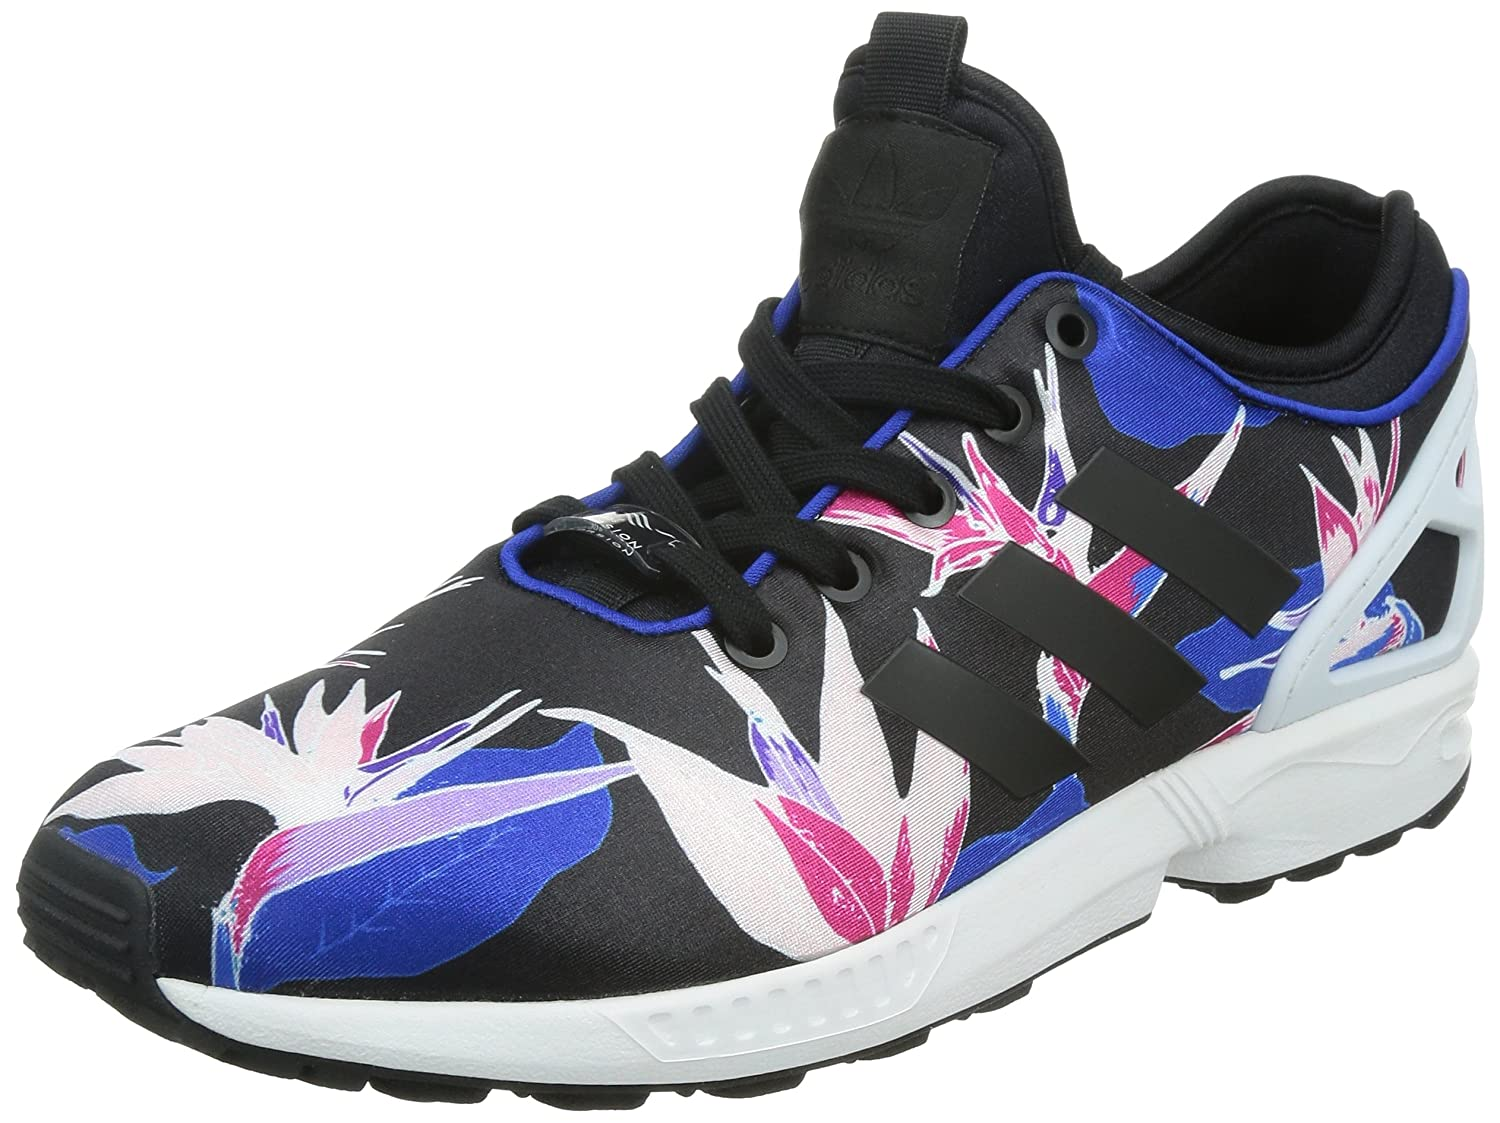 quality design 570ad c8167 adidas Zx Flux NPS, Women s Low-Top Sneakers